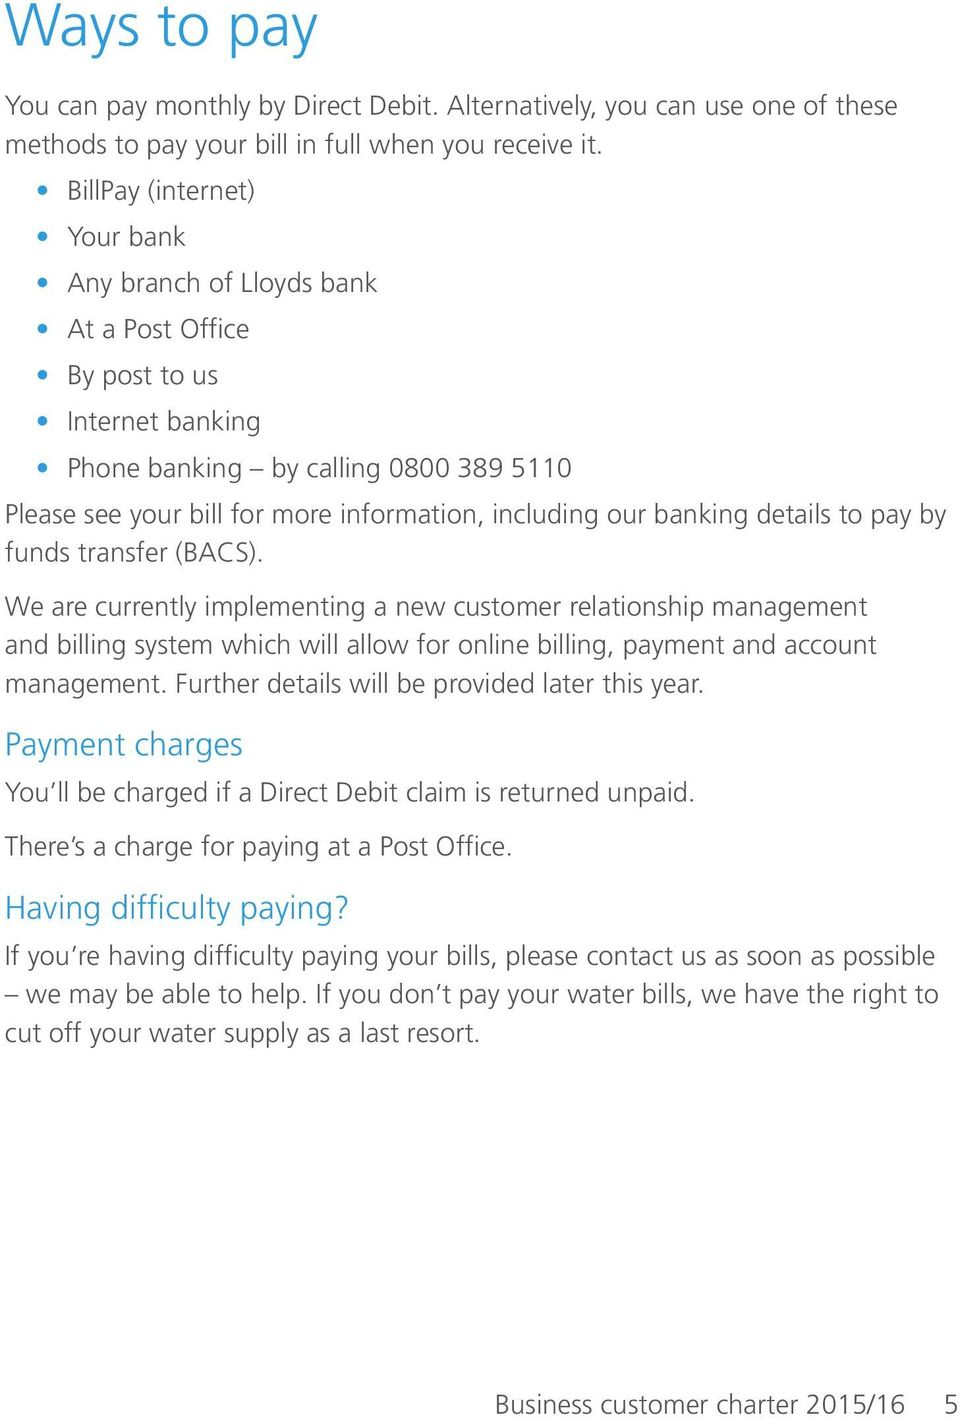 banking details to pay by funds transfer (BACS).